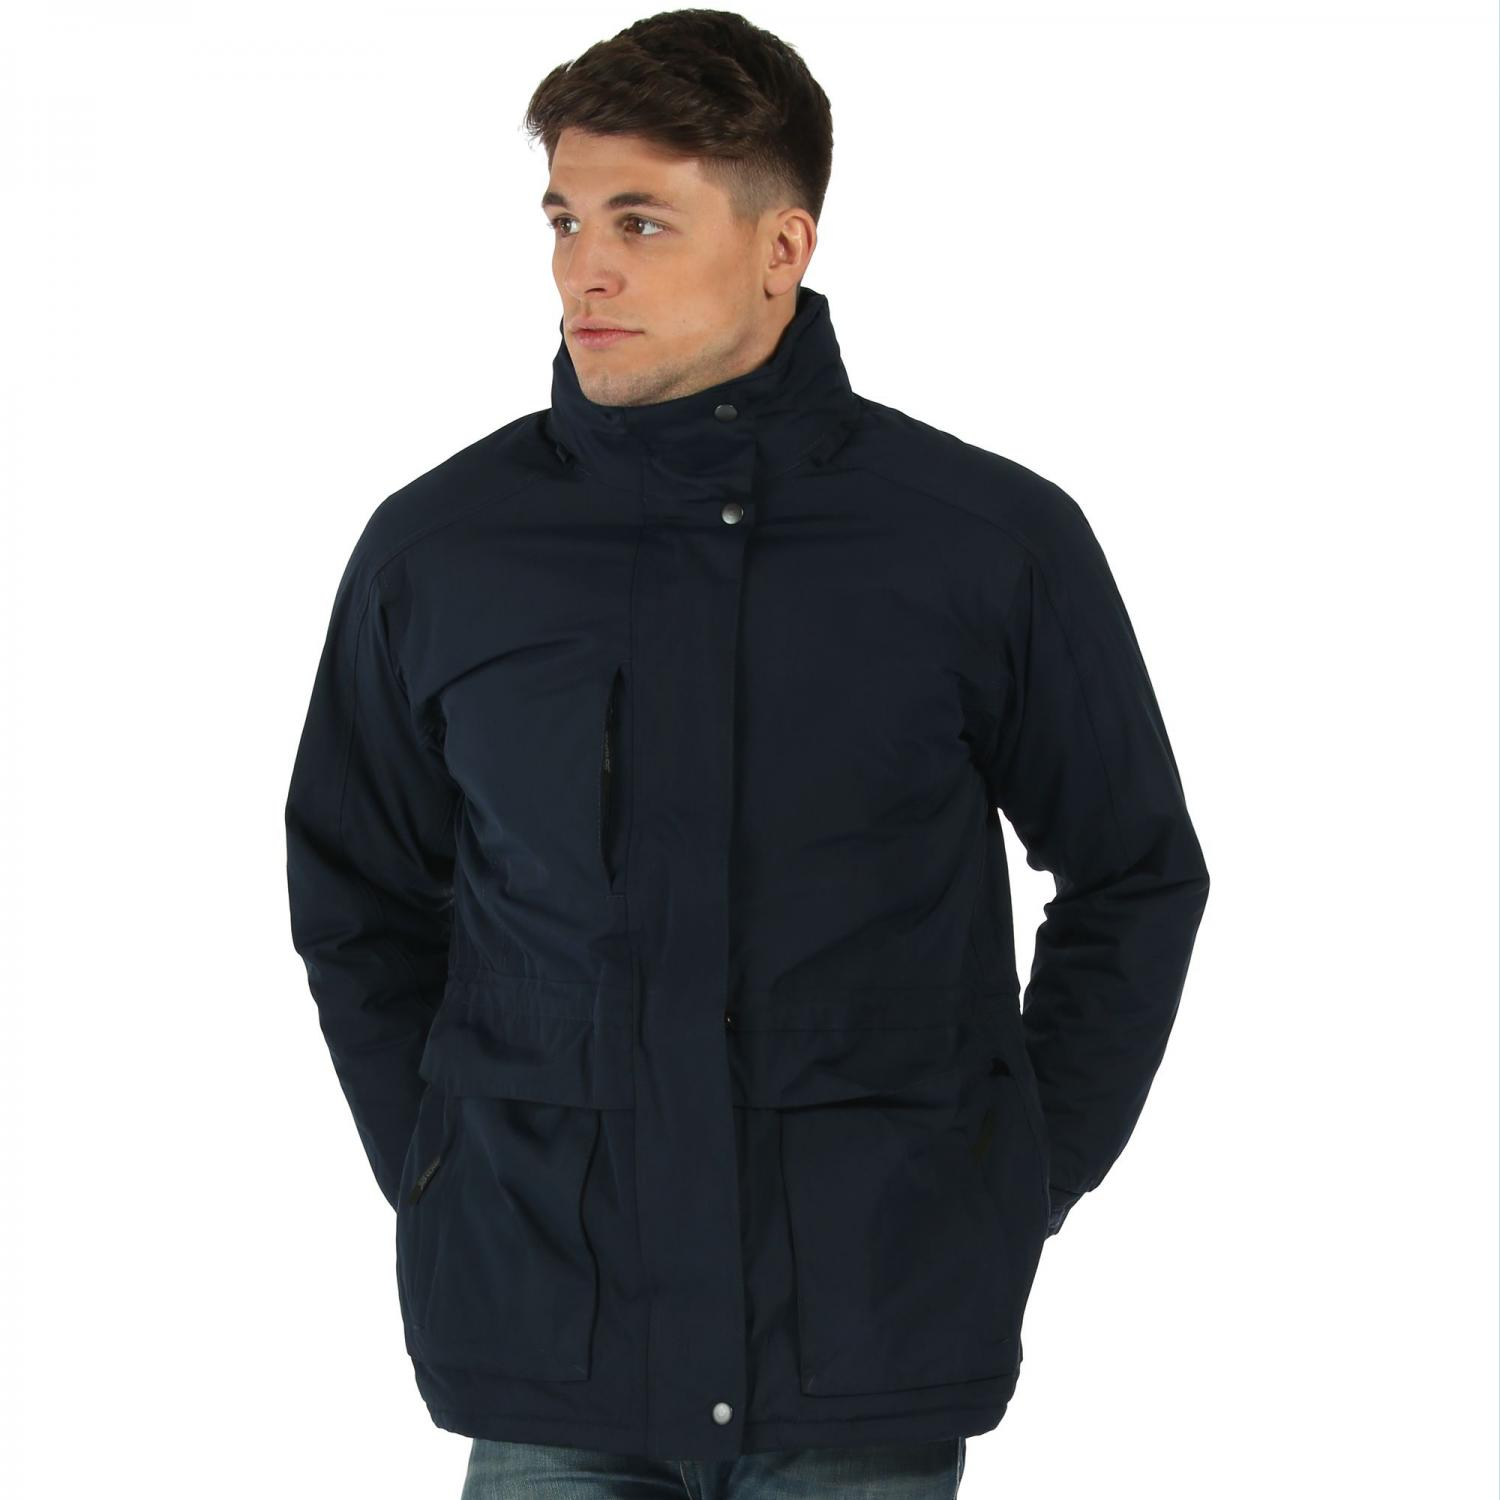 Darby II Insulated Jacket Navy